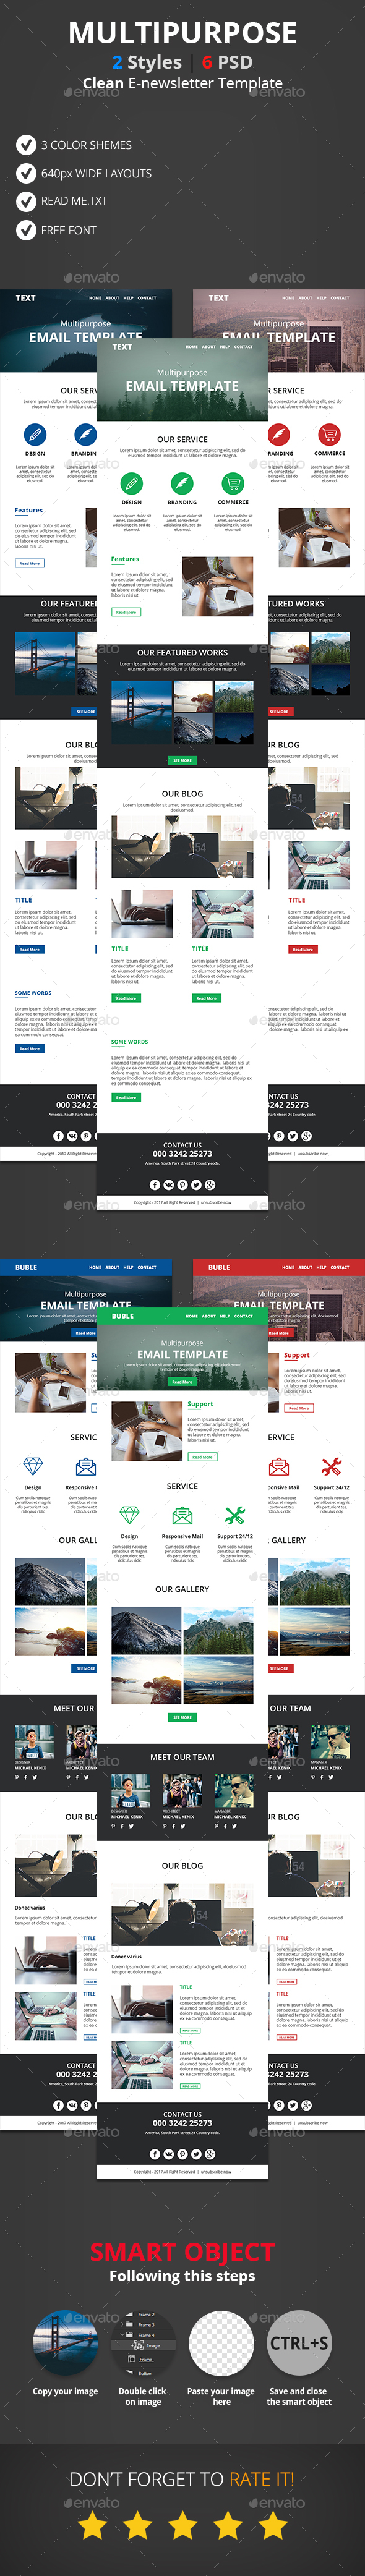 Charming 1.5 Button Template Small 10 Tips For Writing A Resume Flat 100 Free Resume Builder And Download 1099 Agreement Template Youthful 13th Birthday Invitation Templates Coloured2 Page Resume Format Example E Newsletter Templates From GraphicRiver